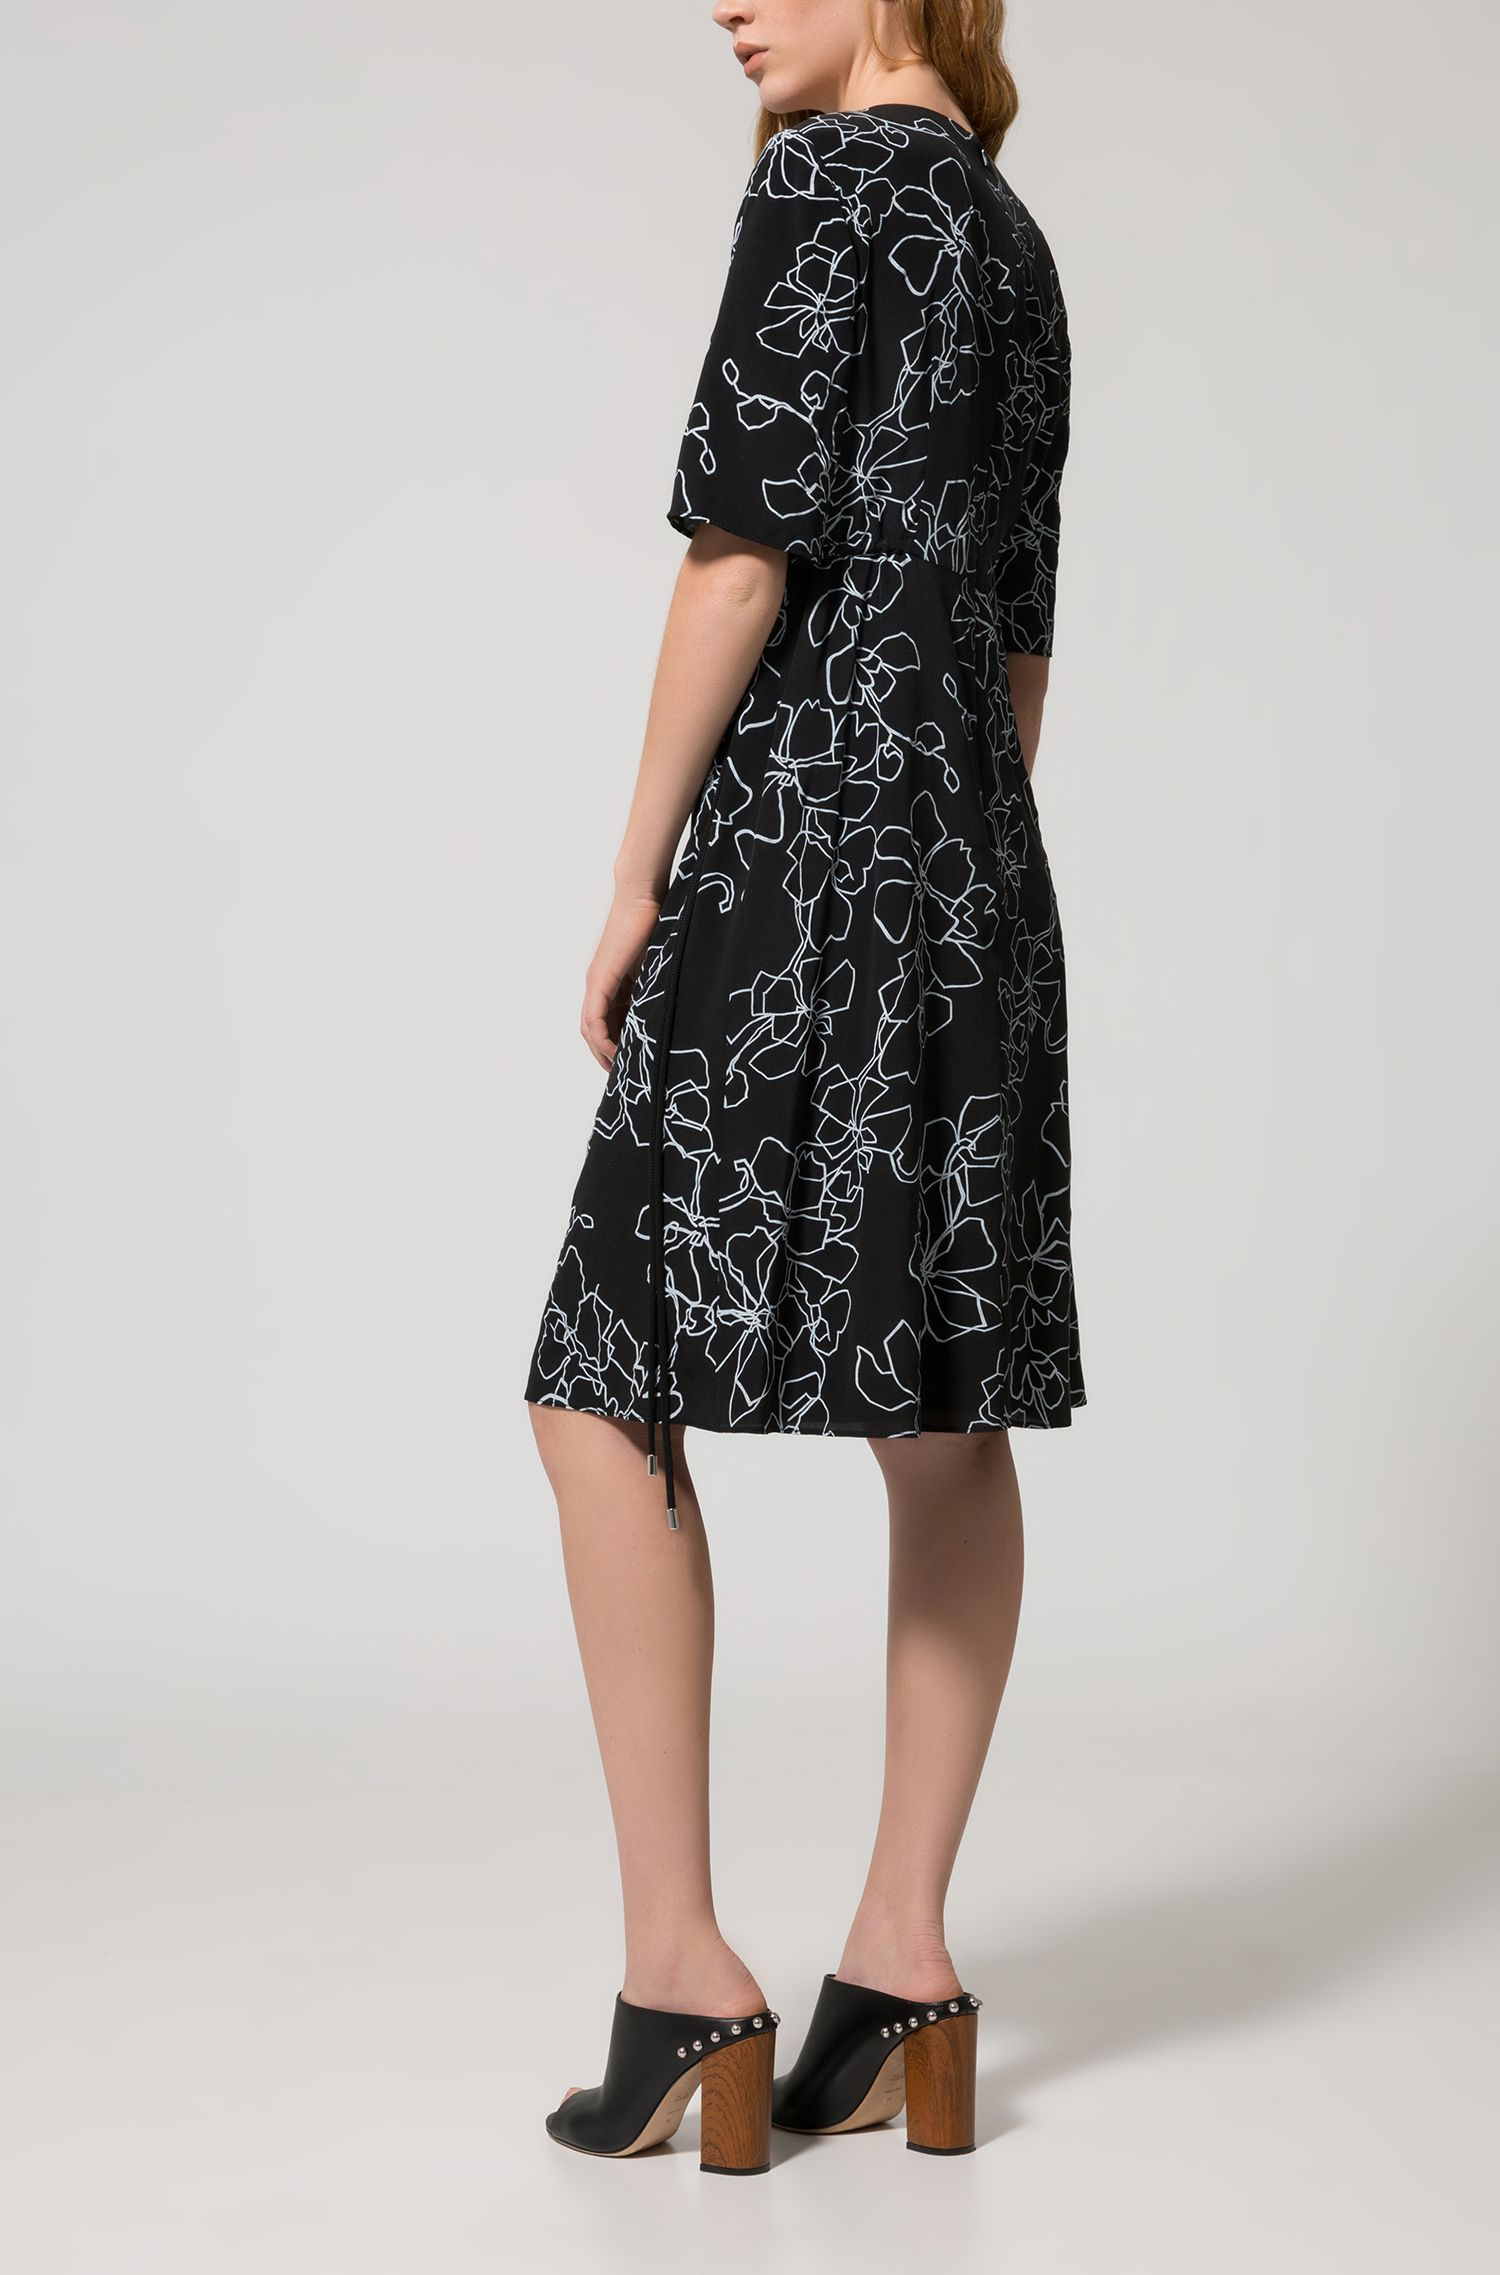 Short-sleeved midi dress in printed silk